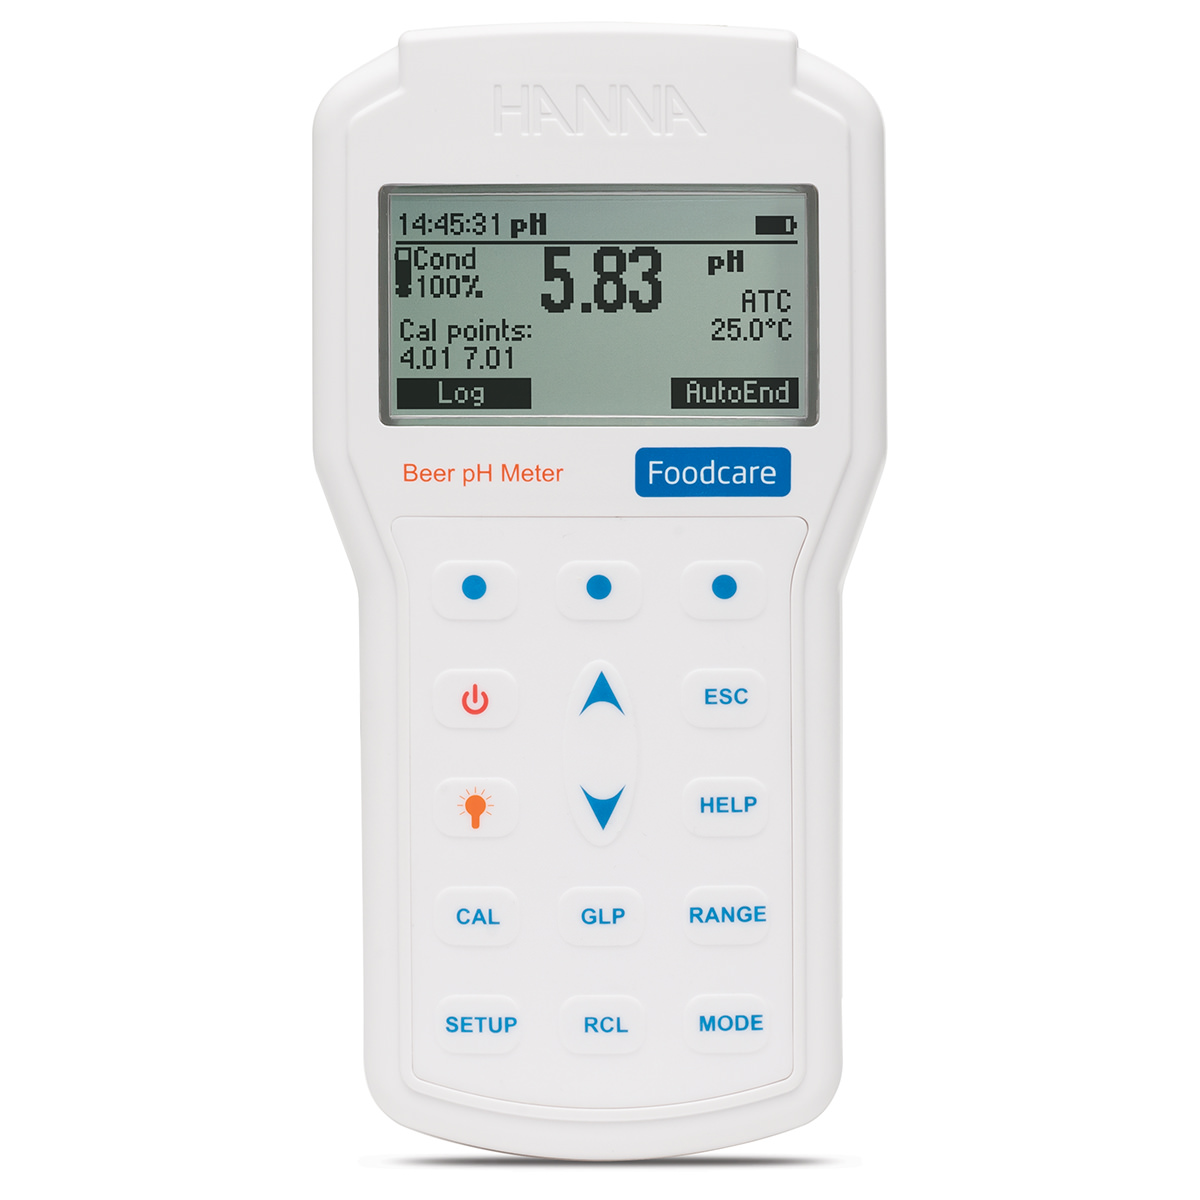 Professional Portable Beer pH Meter - HI98167